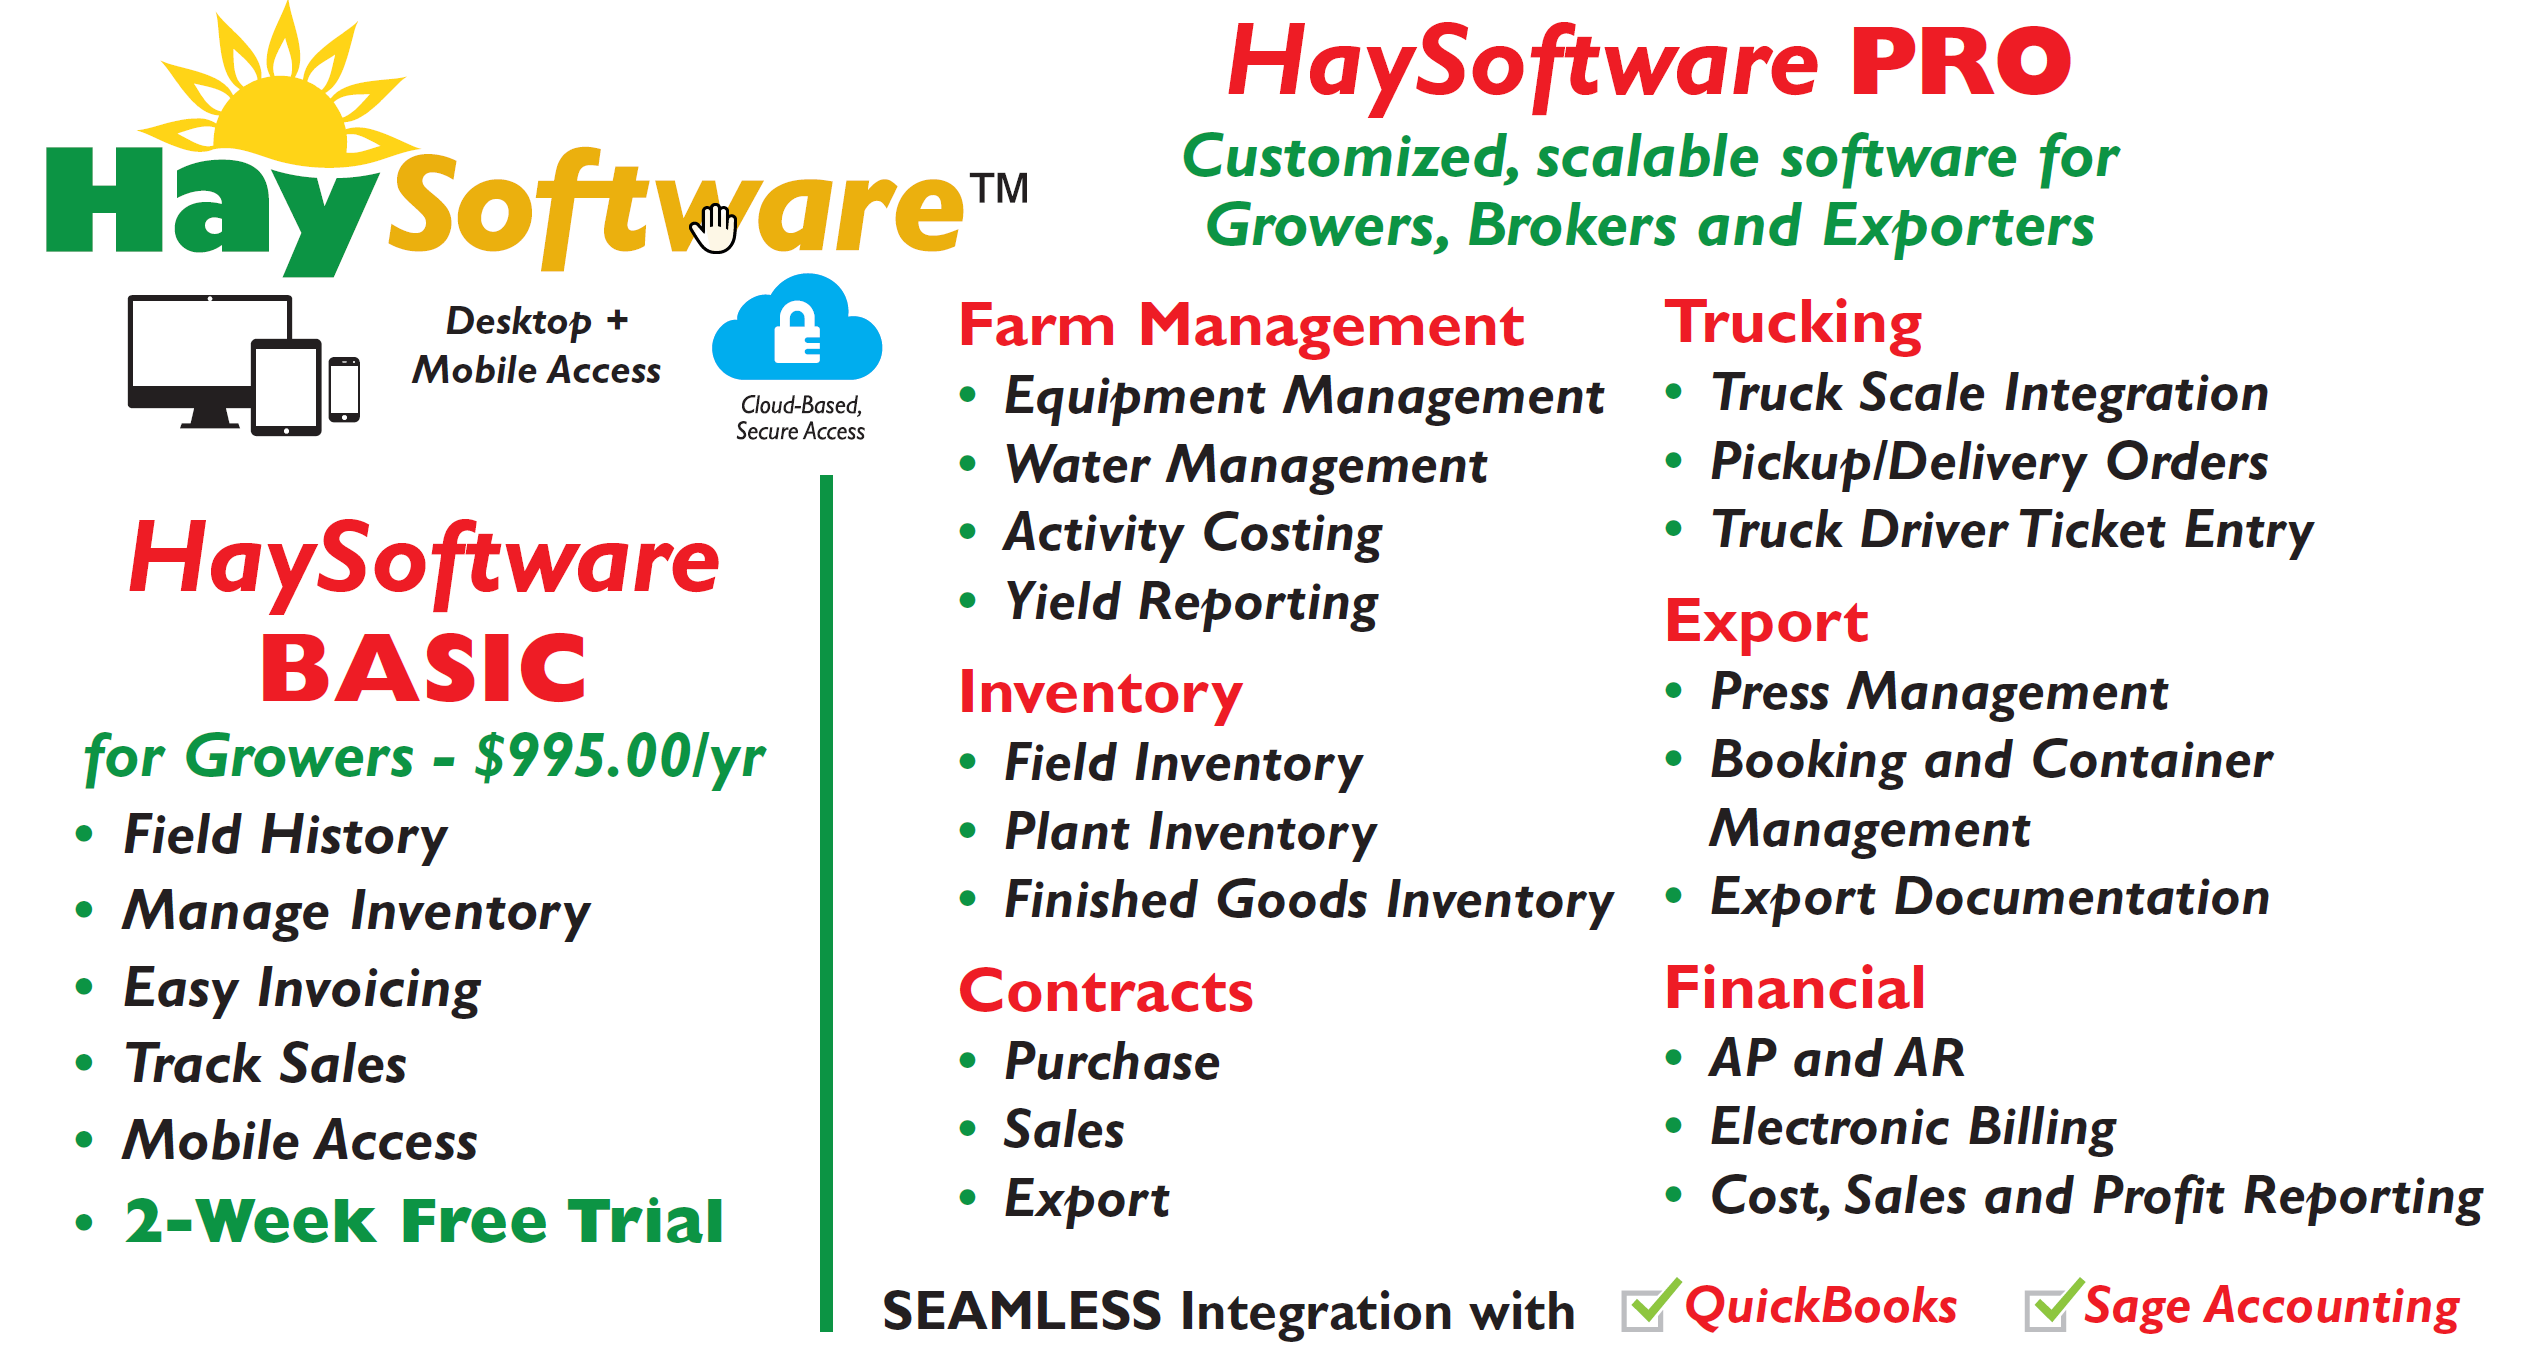 Hay Software